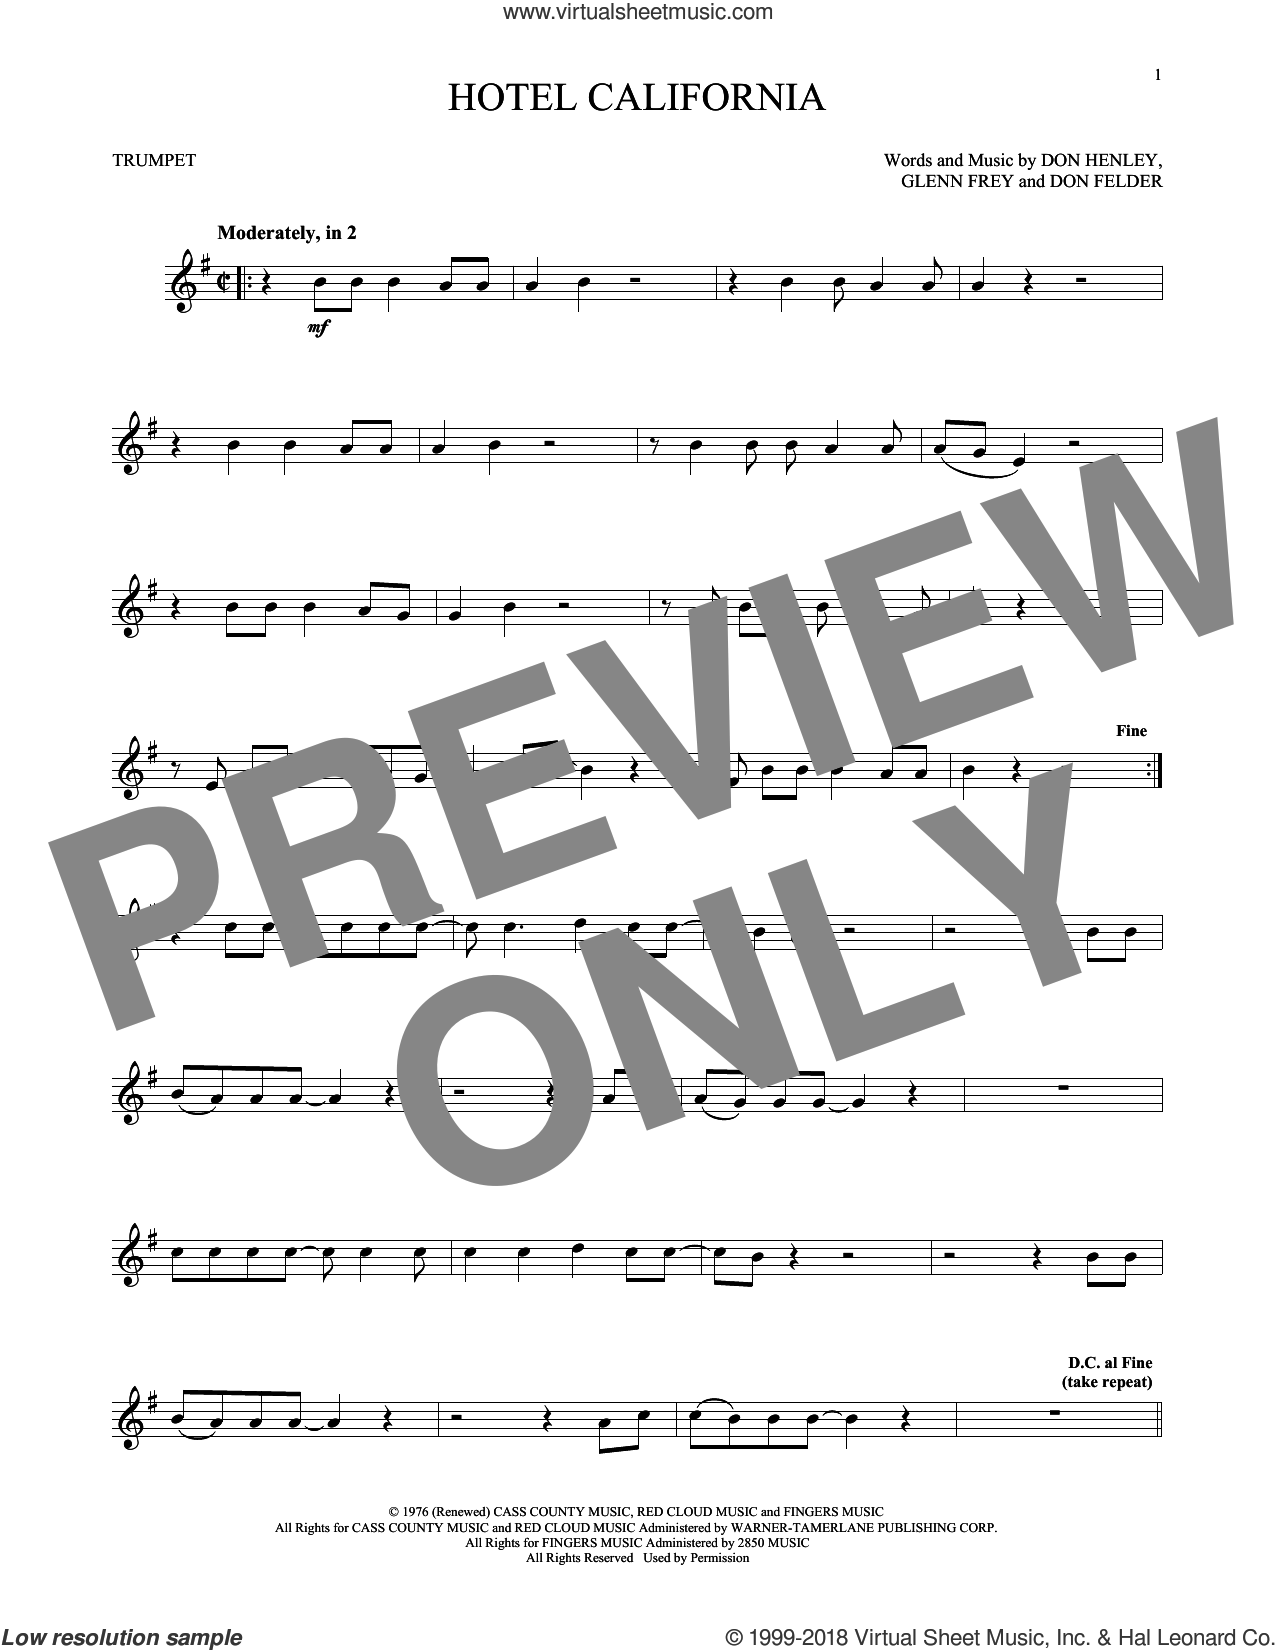 Hotel California sheet music for trumpet solo by Don Henley, The Eagles, Don Felder and Glenn Frey, intermediate skill level